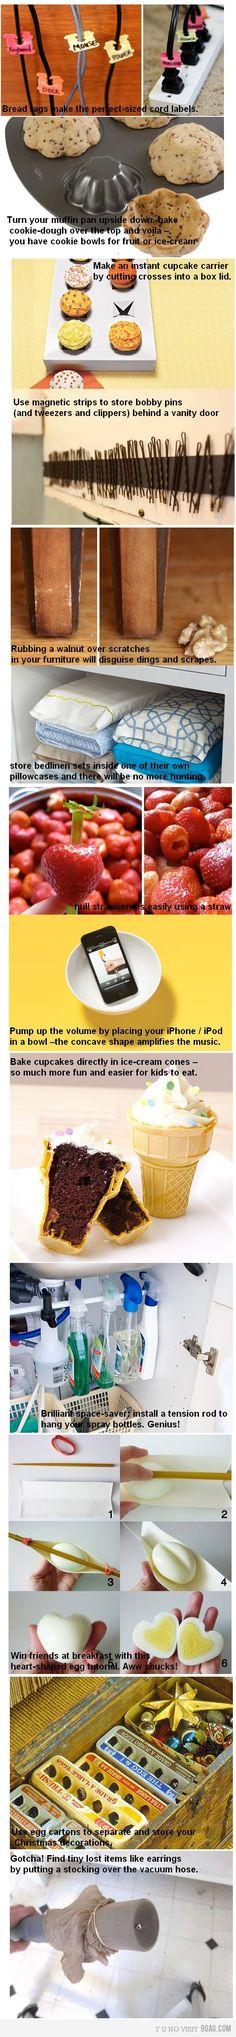 Some of these ideas are just genius!